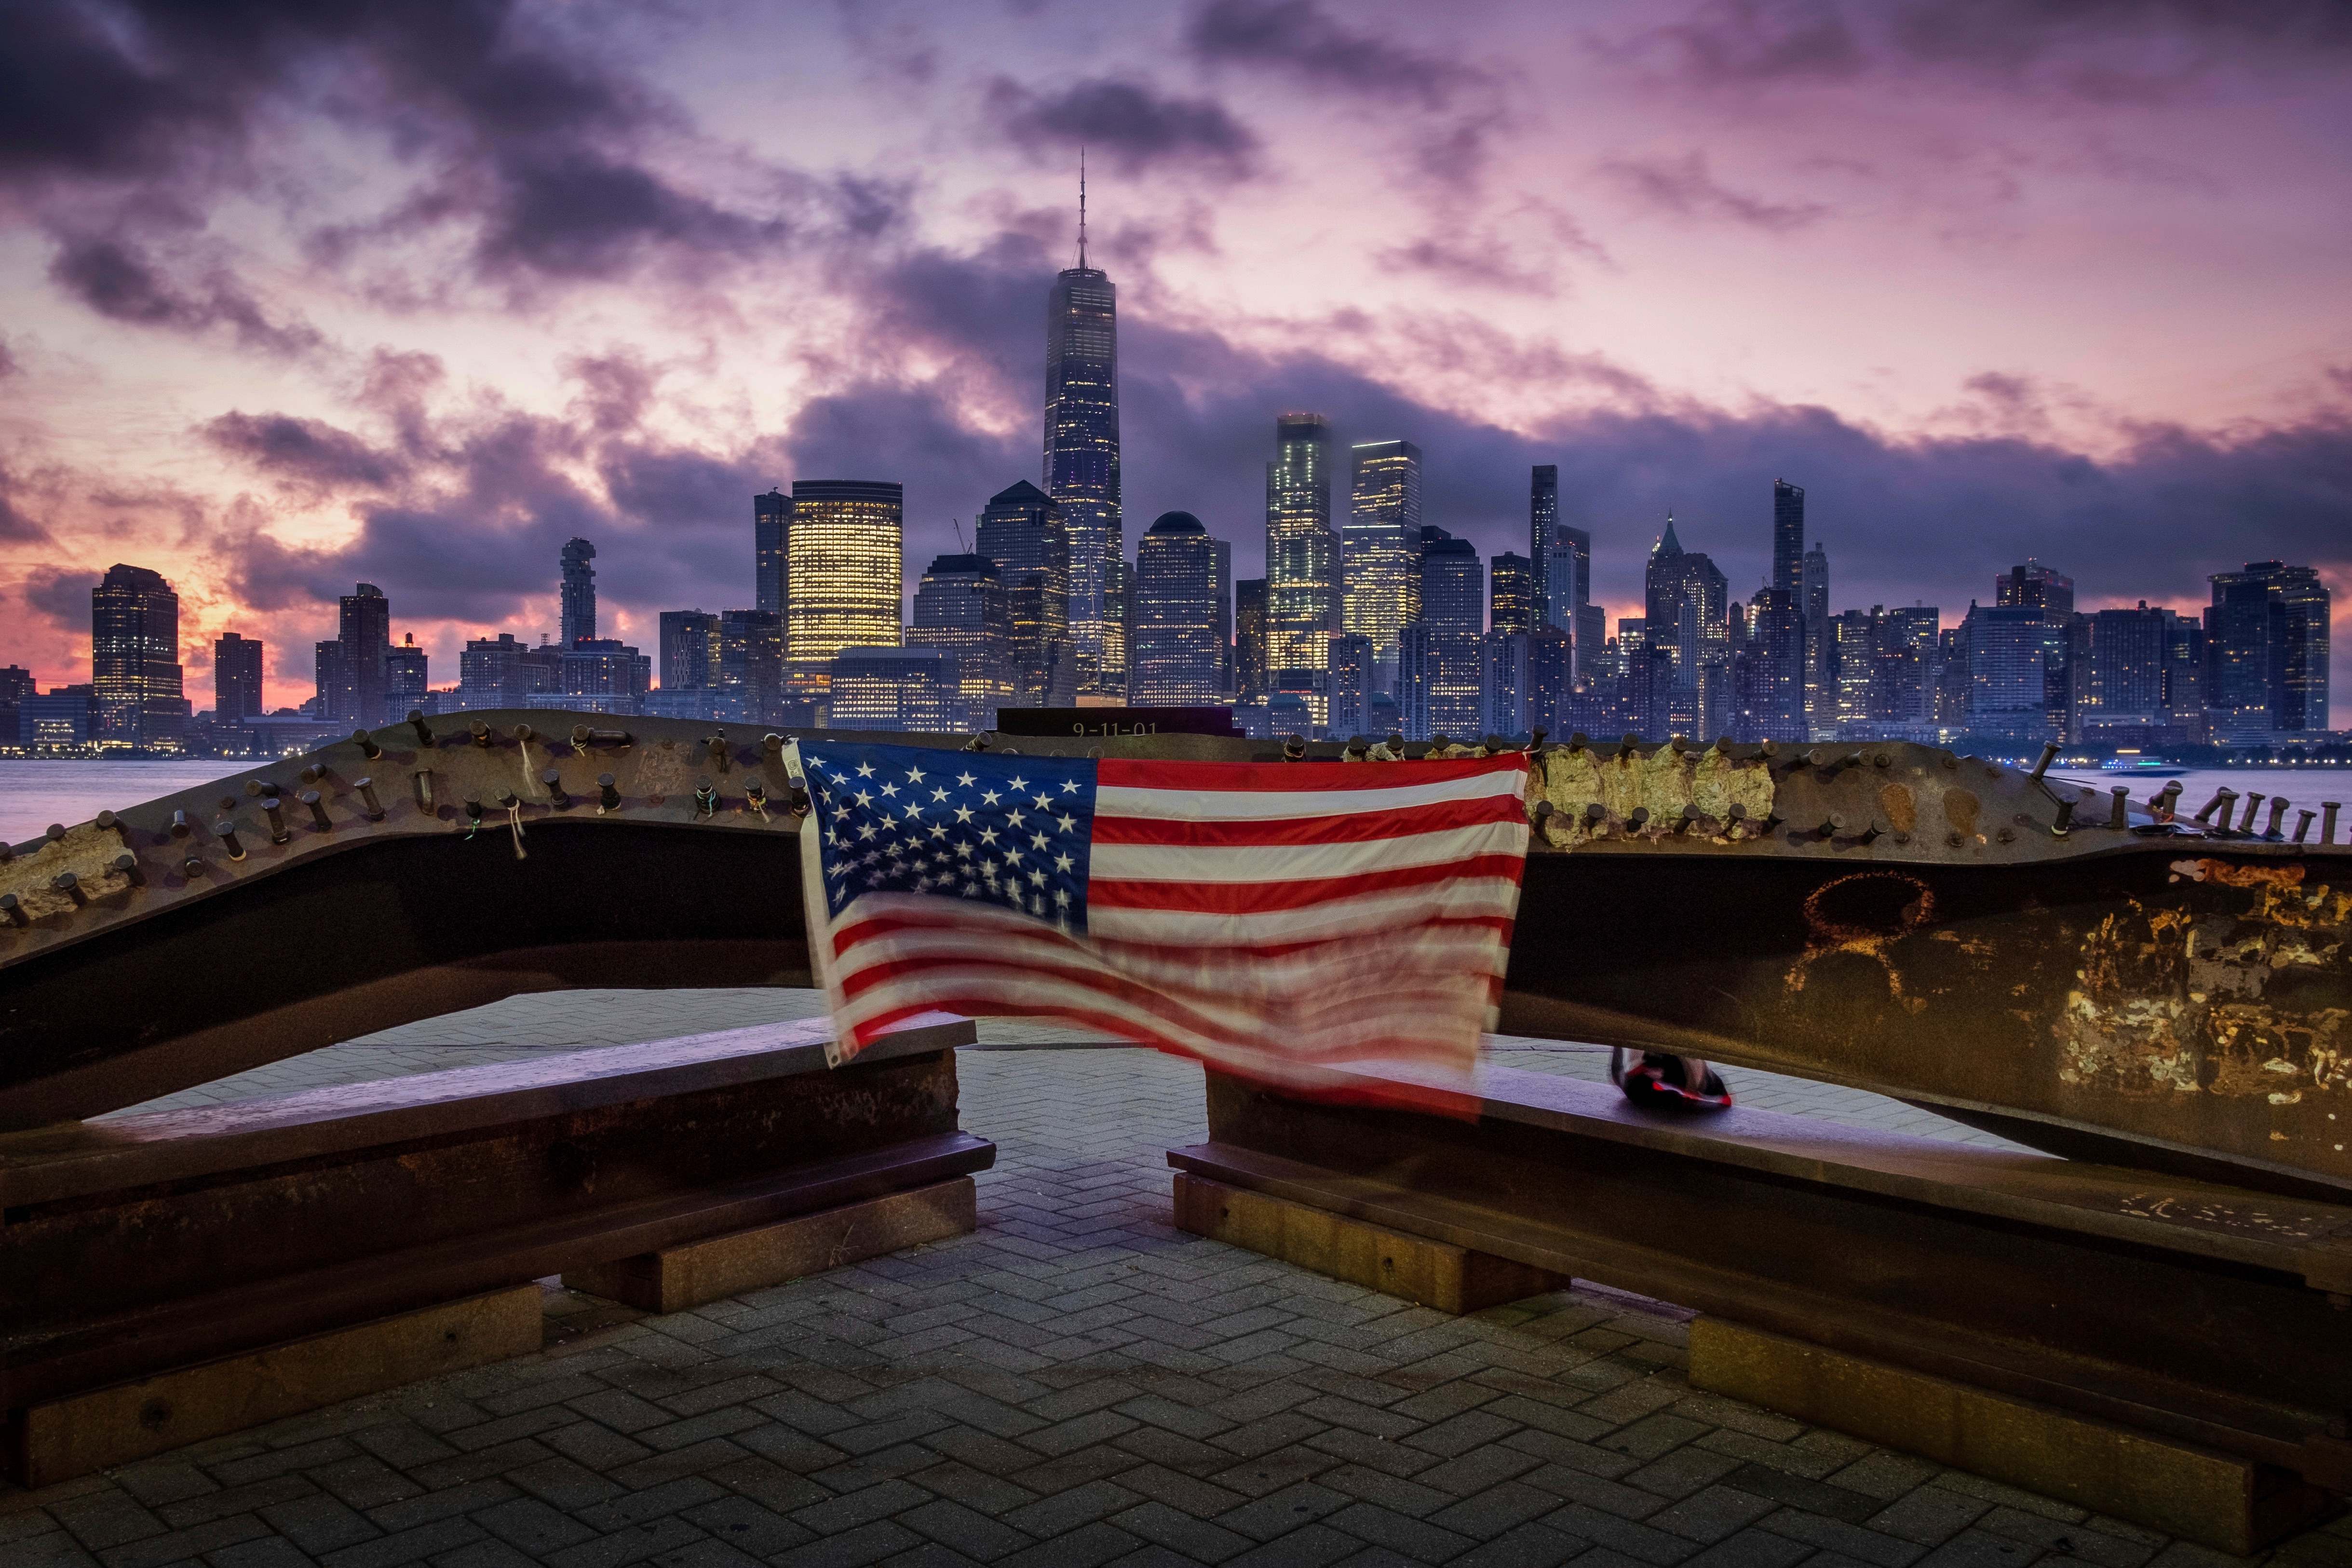 19 Years On Does A Post 9 11 Generation Remember The Attacks Voice Of America English